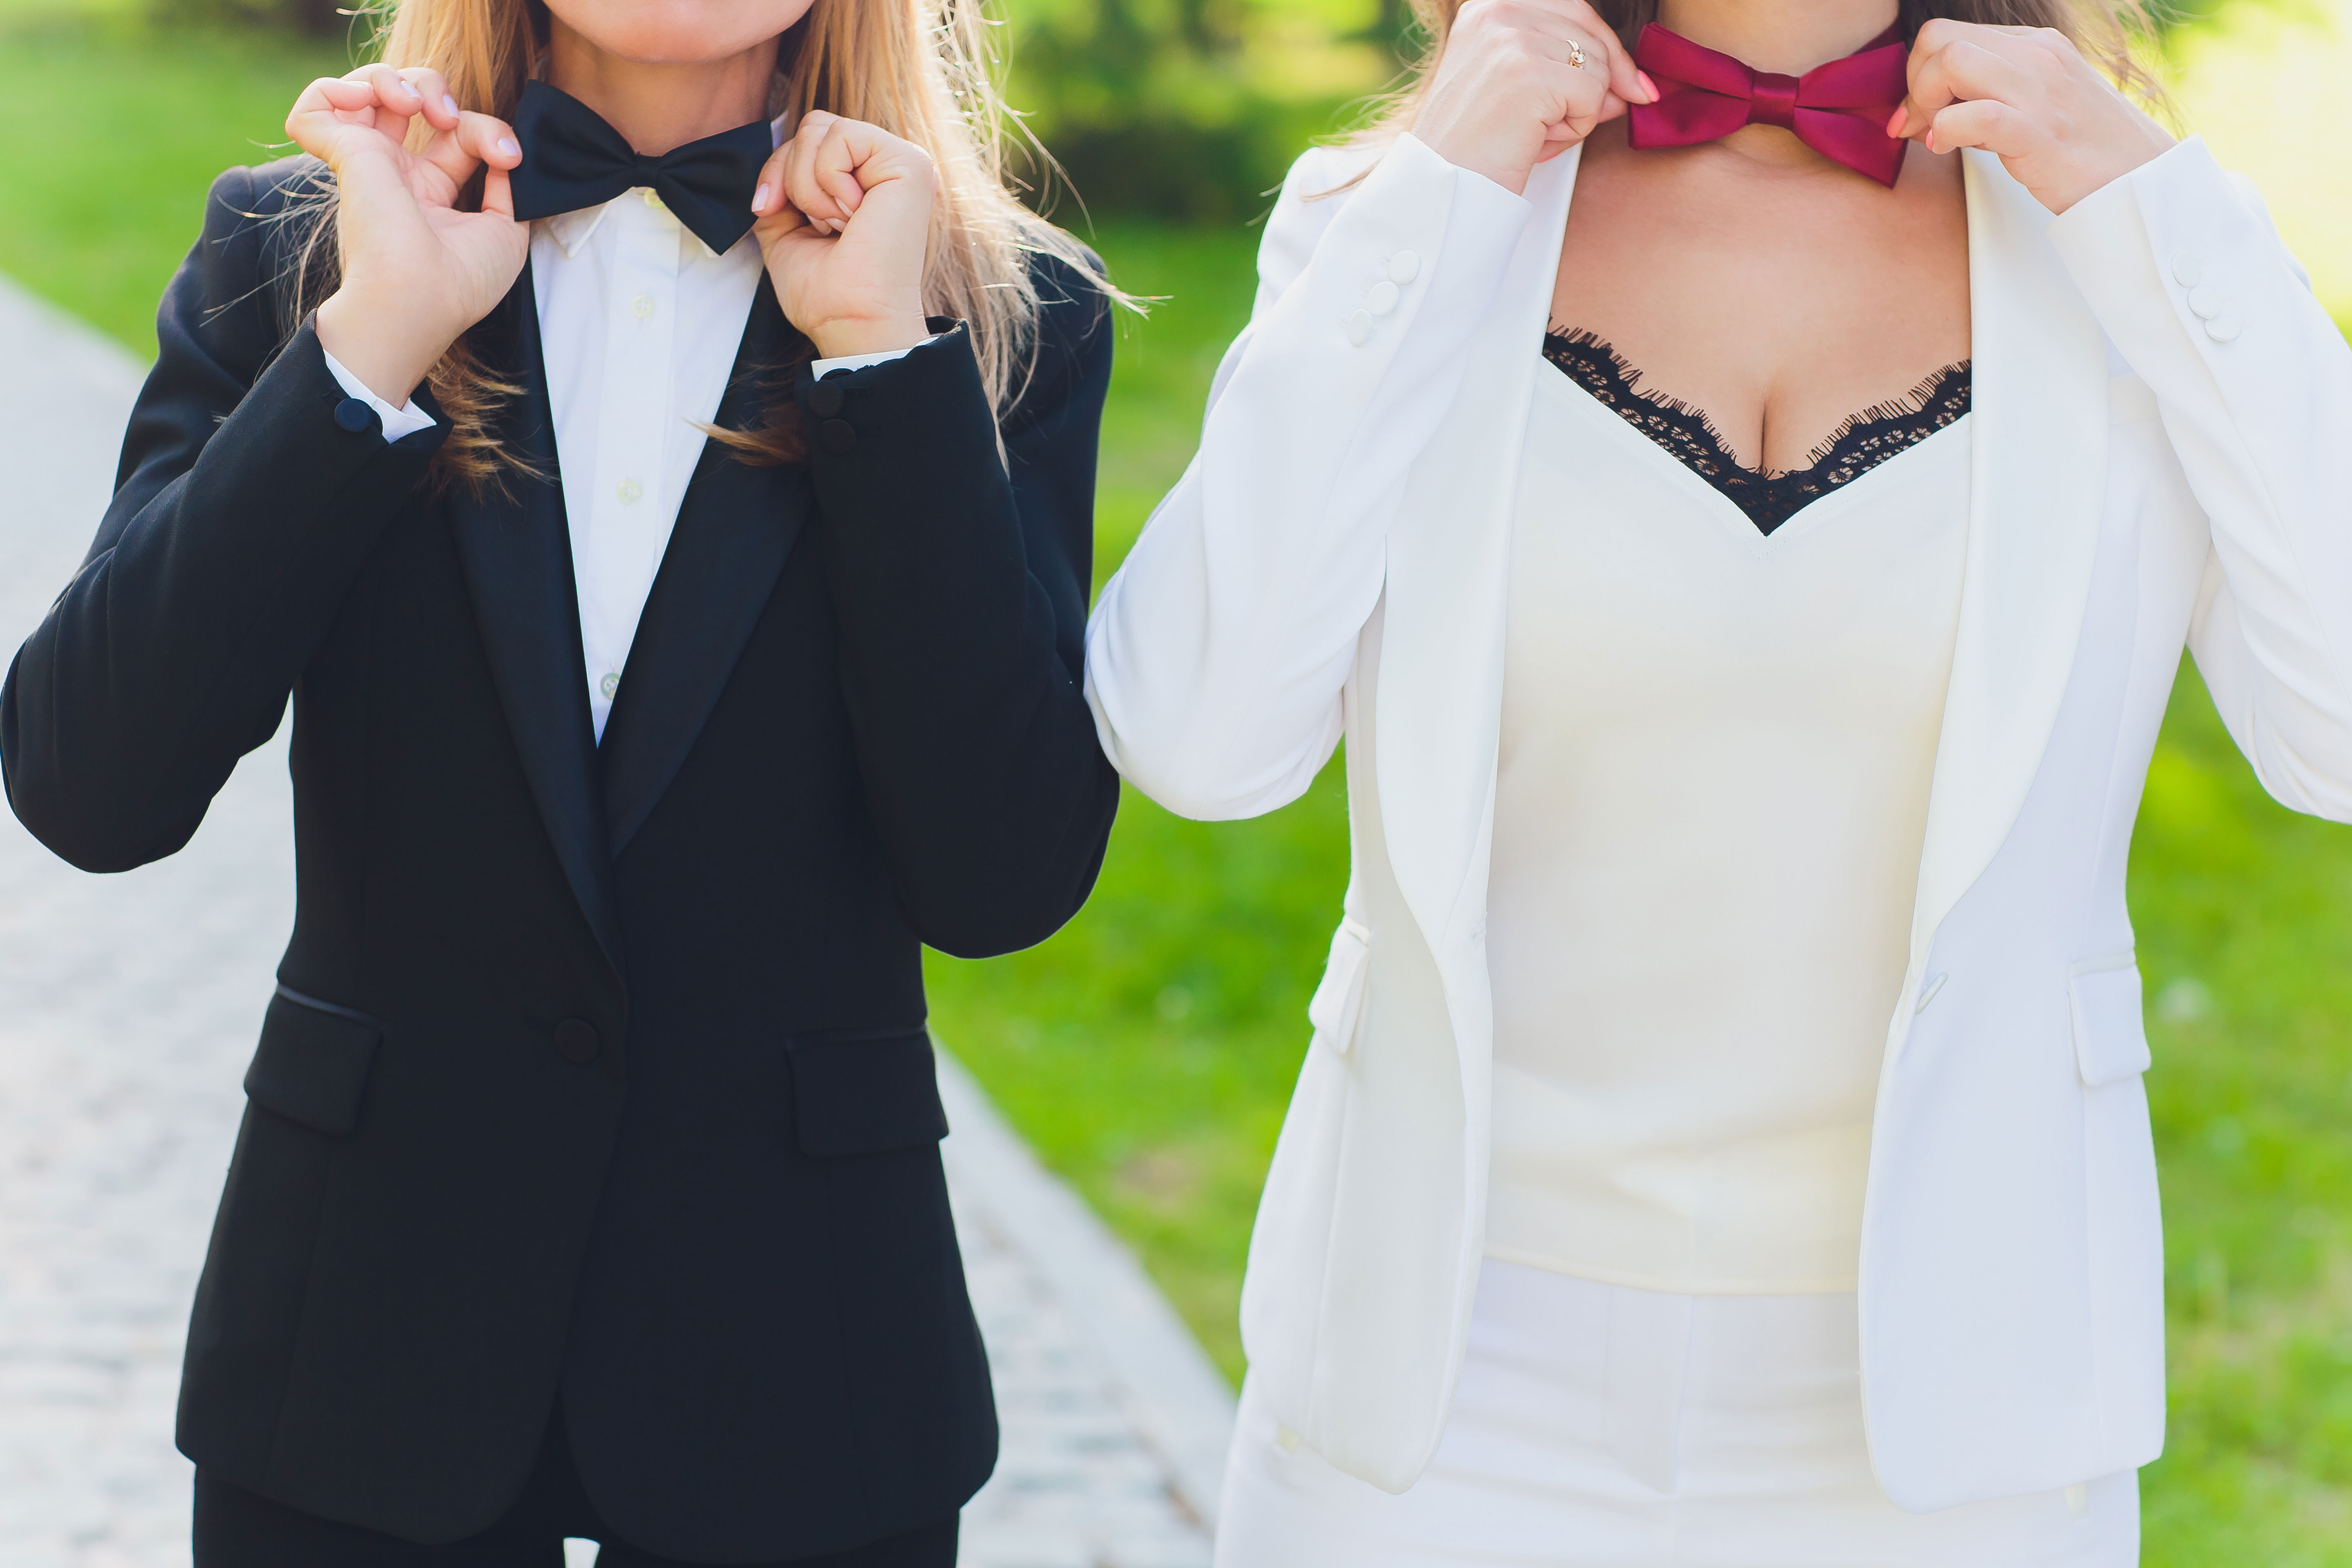 one woman in black tux with black bow tie and another woman in white tux with red bow tie